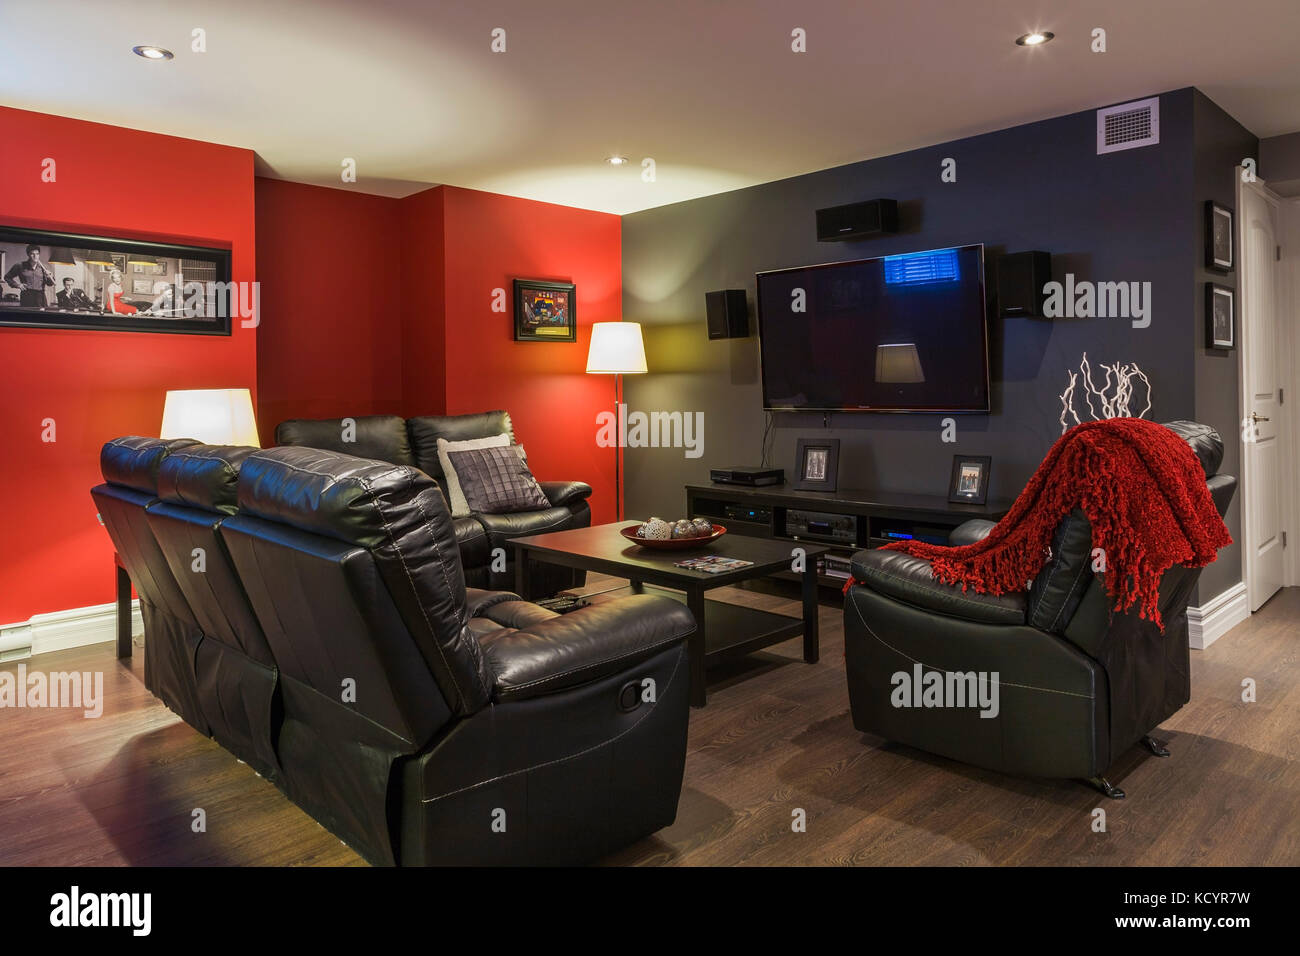 Picture of: Black Leather Sofas And Reclining Chair With Wooden Coffee Table In Stock Photo Alamy